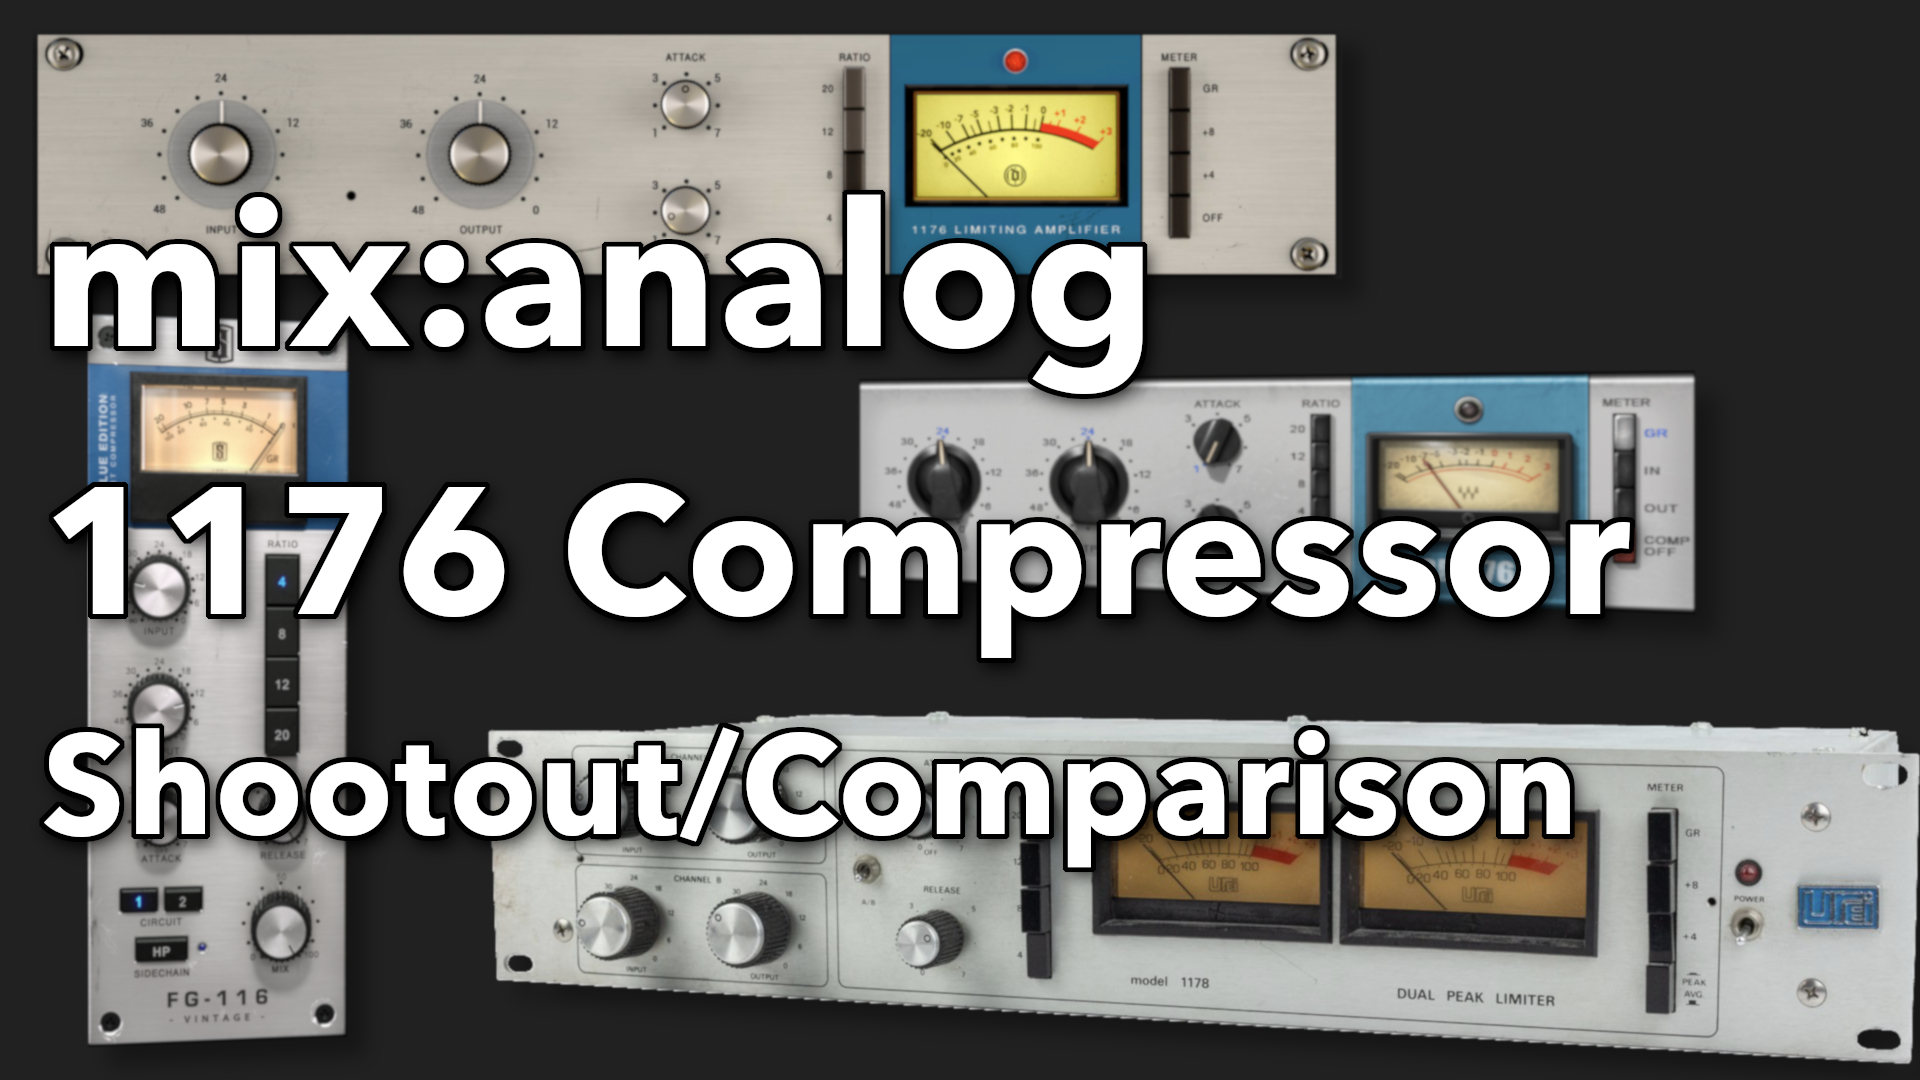 1176-compressor-shootout-comparison